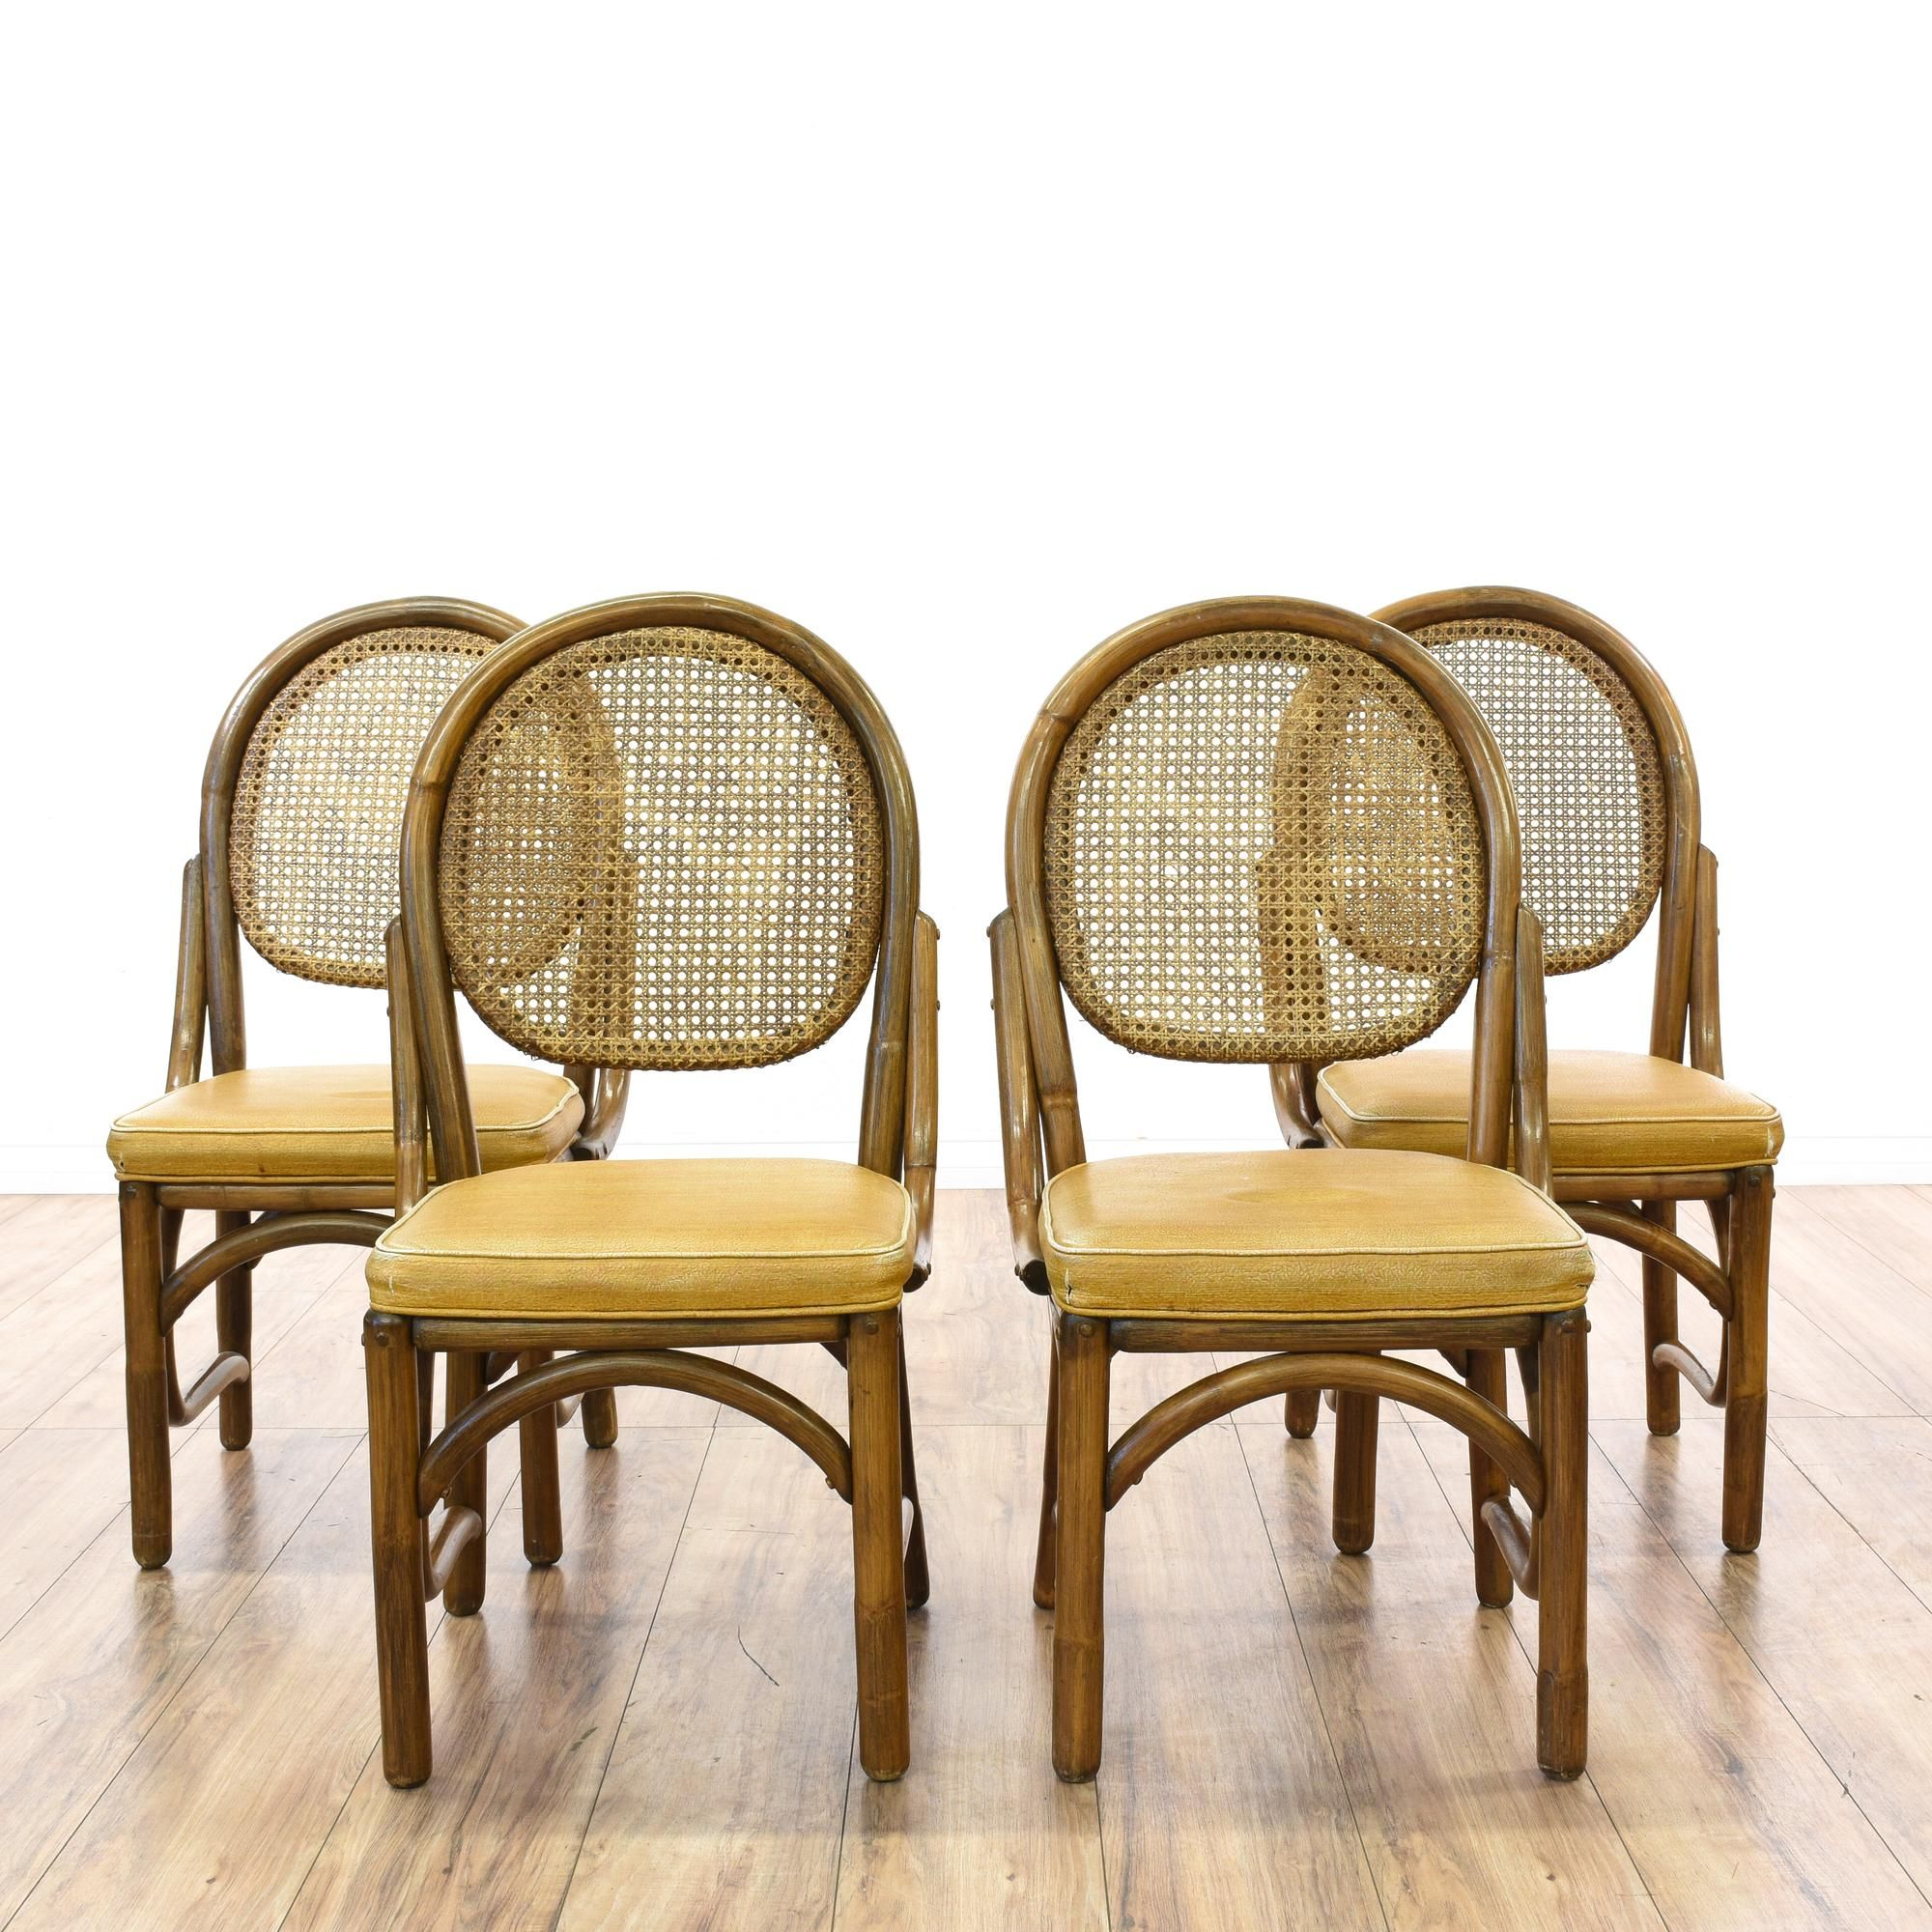 Set 4 Rattan Cane Back Dining Chairs